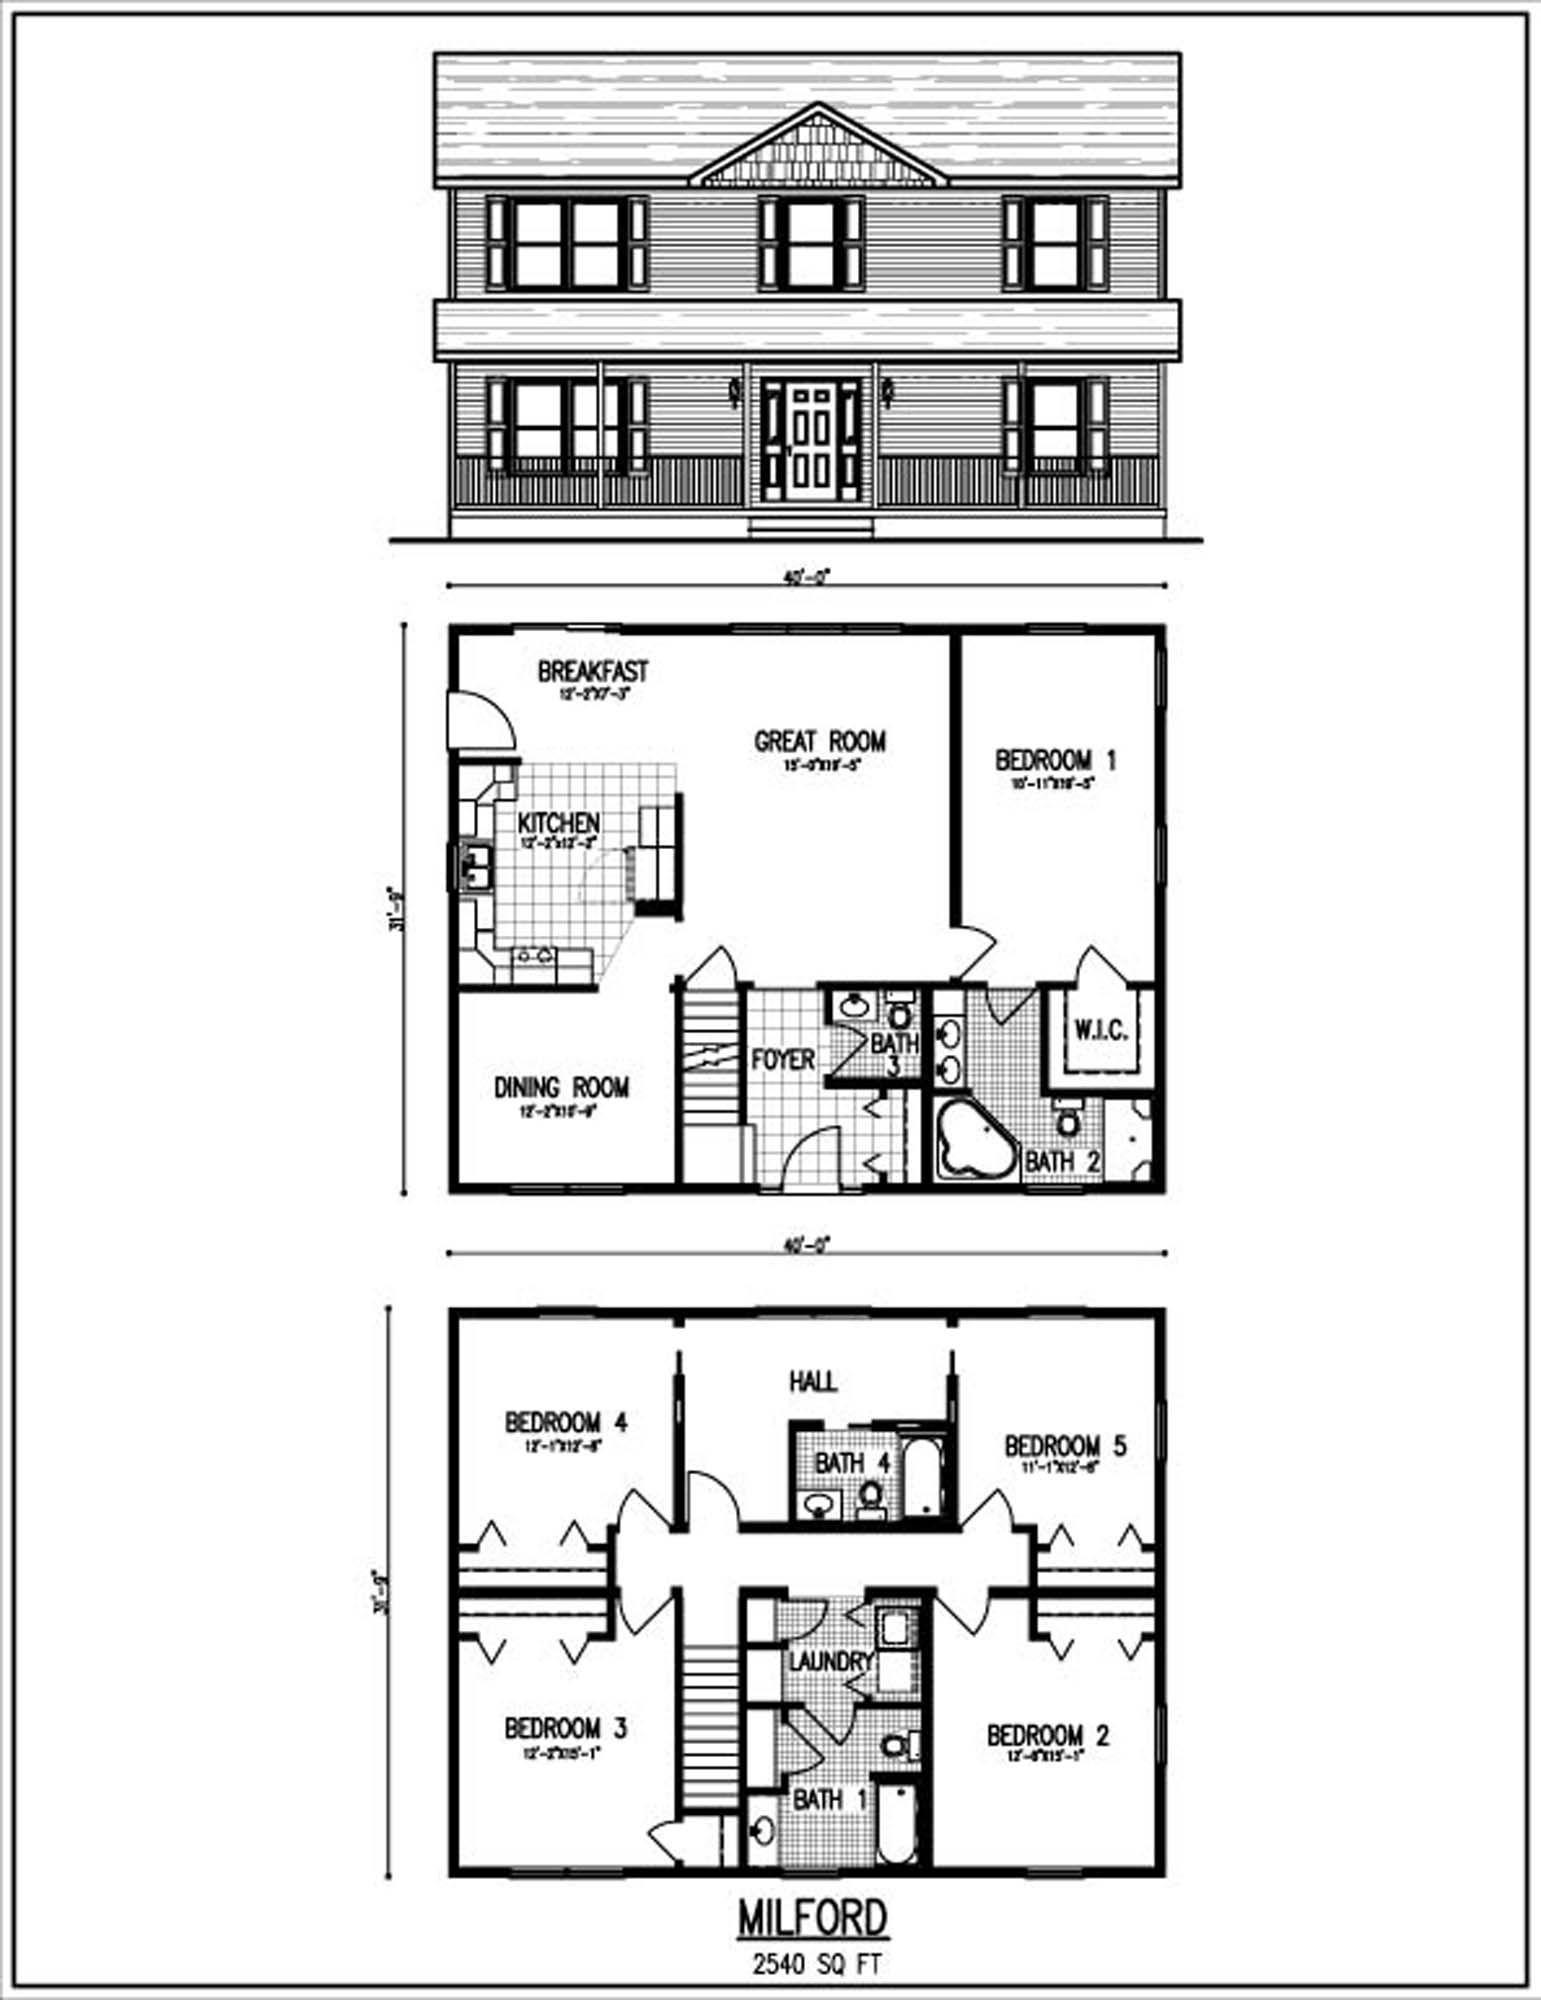 Beautiful 2 story house plans with upper level floor plan Two story house floor plans